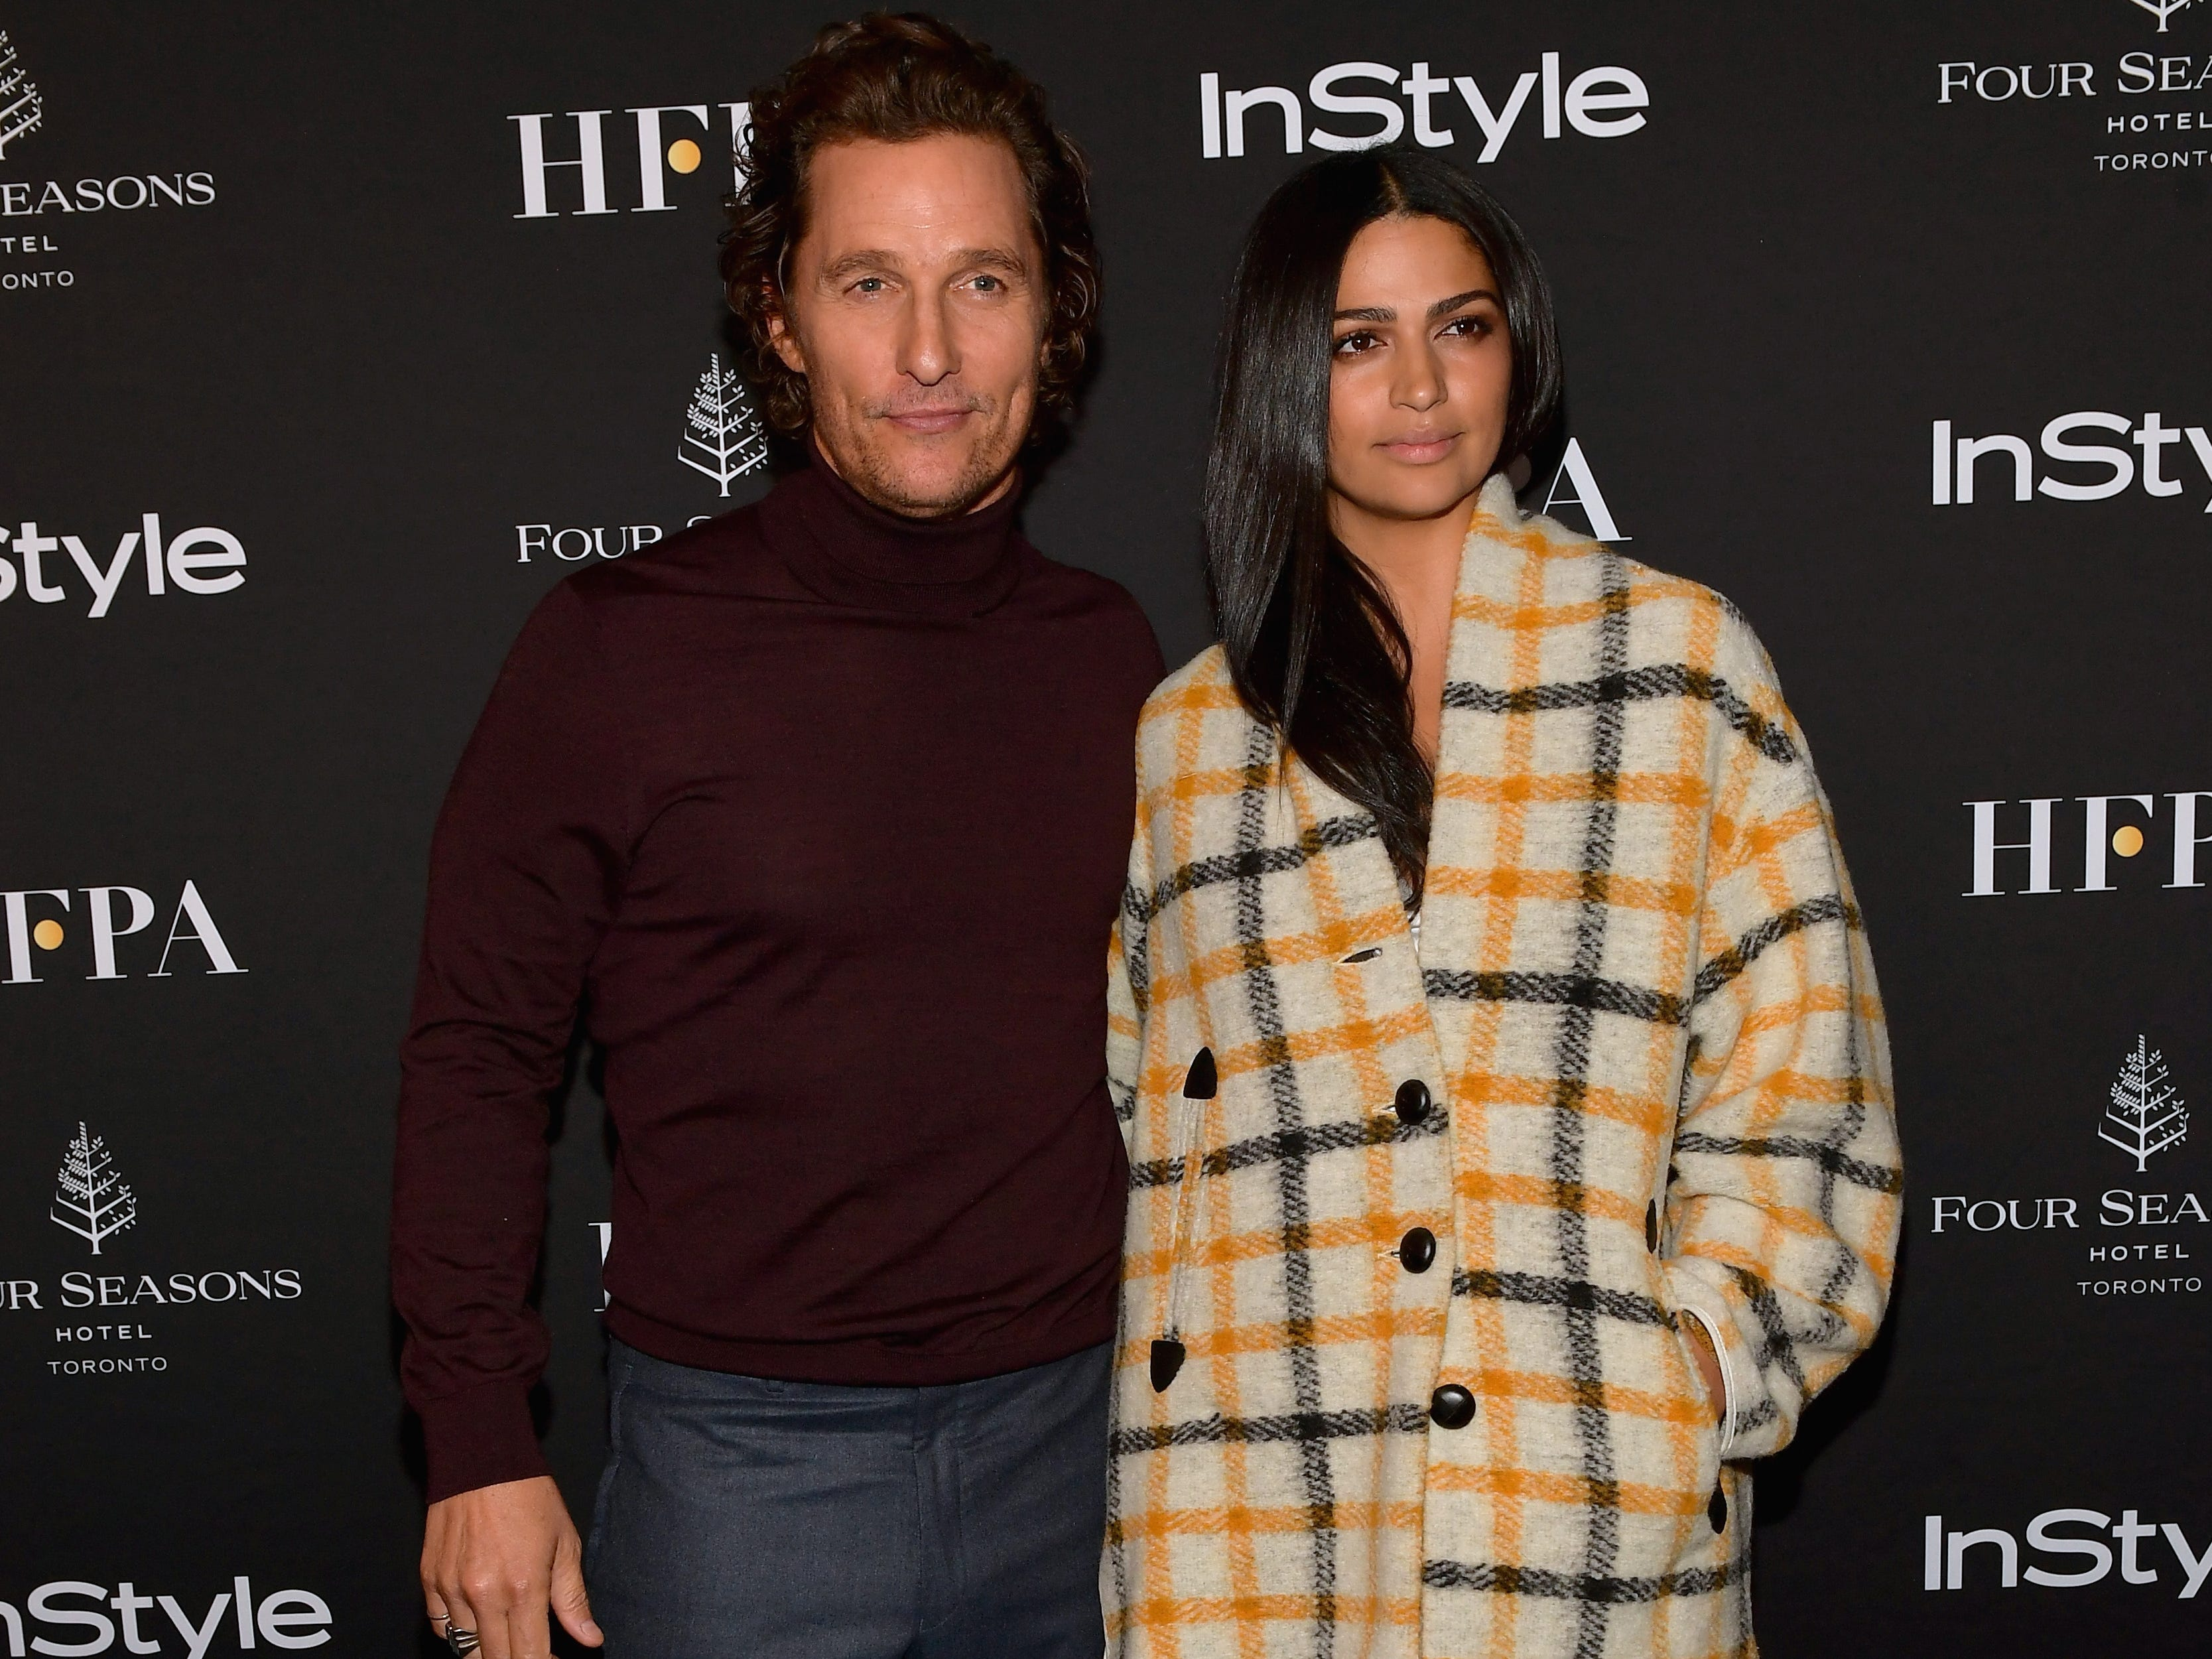 TORONTO, ON - SEPTEMBER 08:  Matthew McConaughey and Camila Alves attend 2018 HFPA and InStyle's TIFF Celebration at the Four Seasons Hotel on September 8, 2018 in Toronto, Canada.  (Photo by Matt Winkelmeyer/Getty Images for InStyle) ORG XMIT: 775214192 ORIG FILE ID: 1029568266